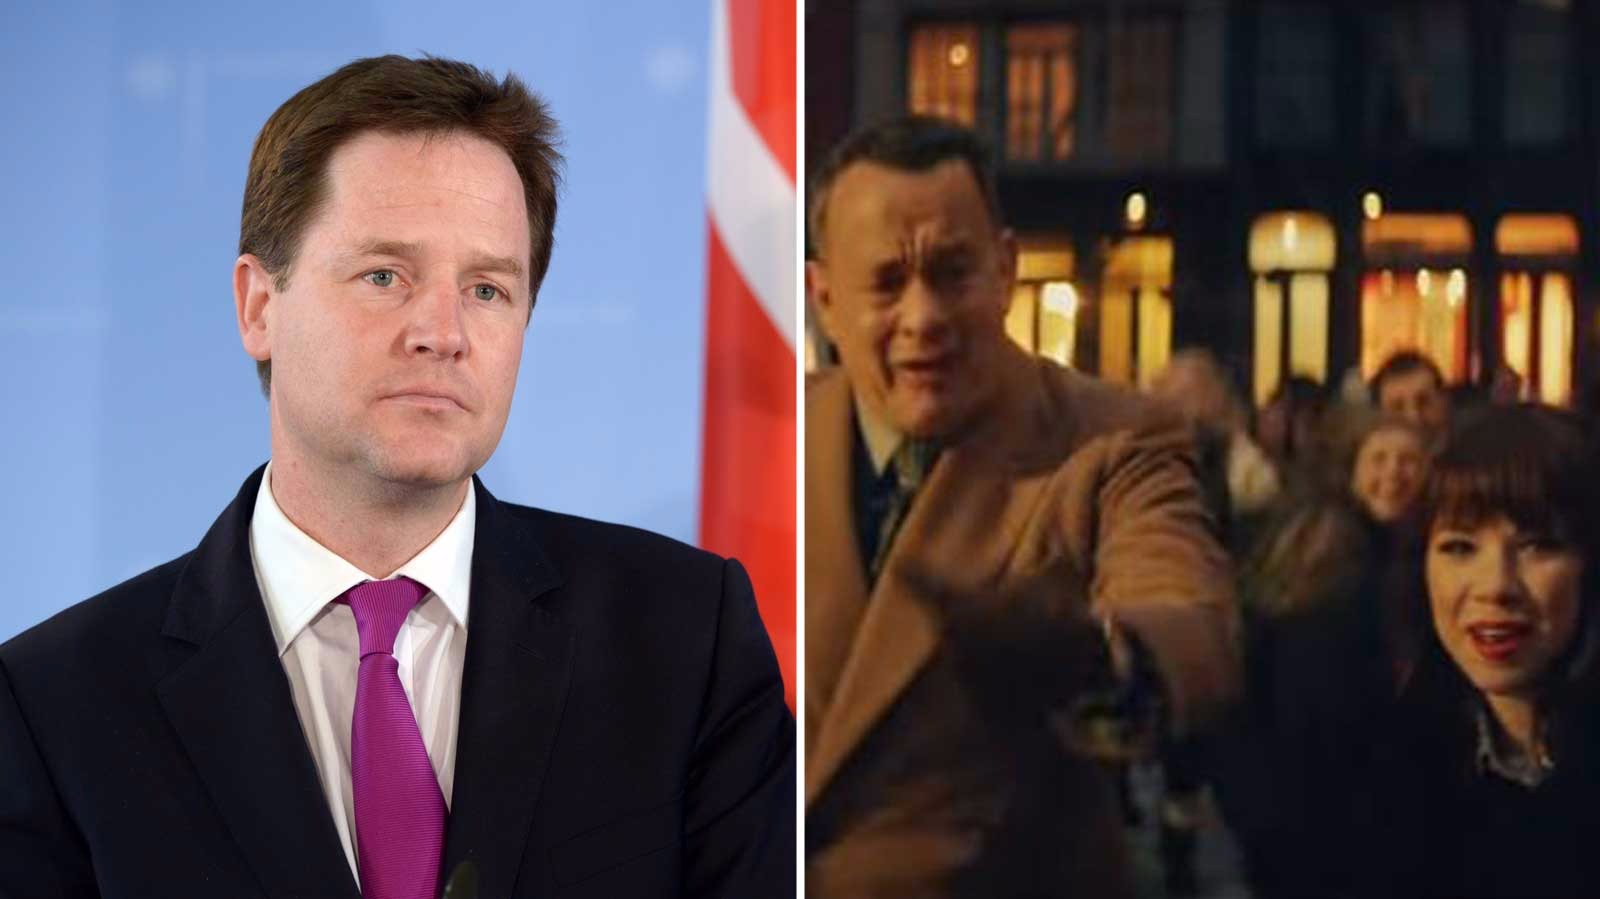 nick clegg son cancer